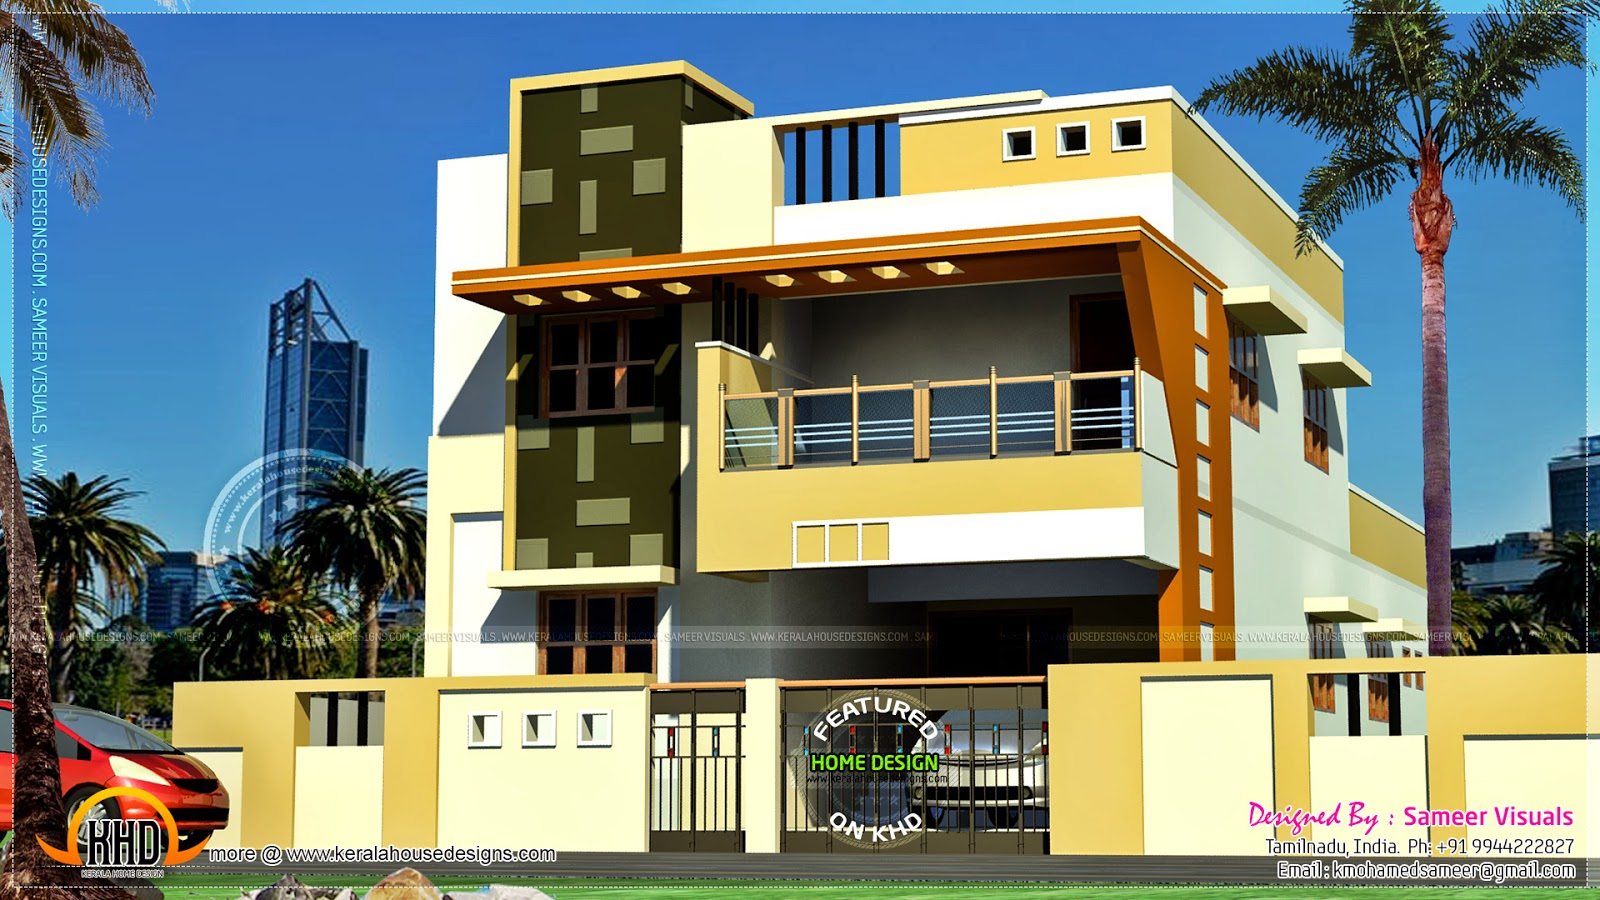 Modern south indian house design kerala home design and for Indian house floor plans free